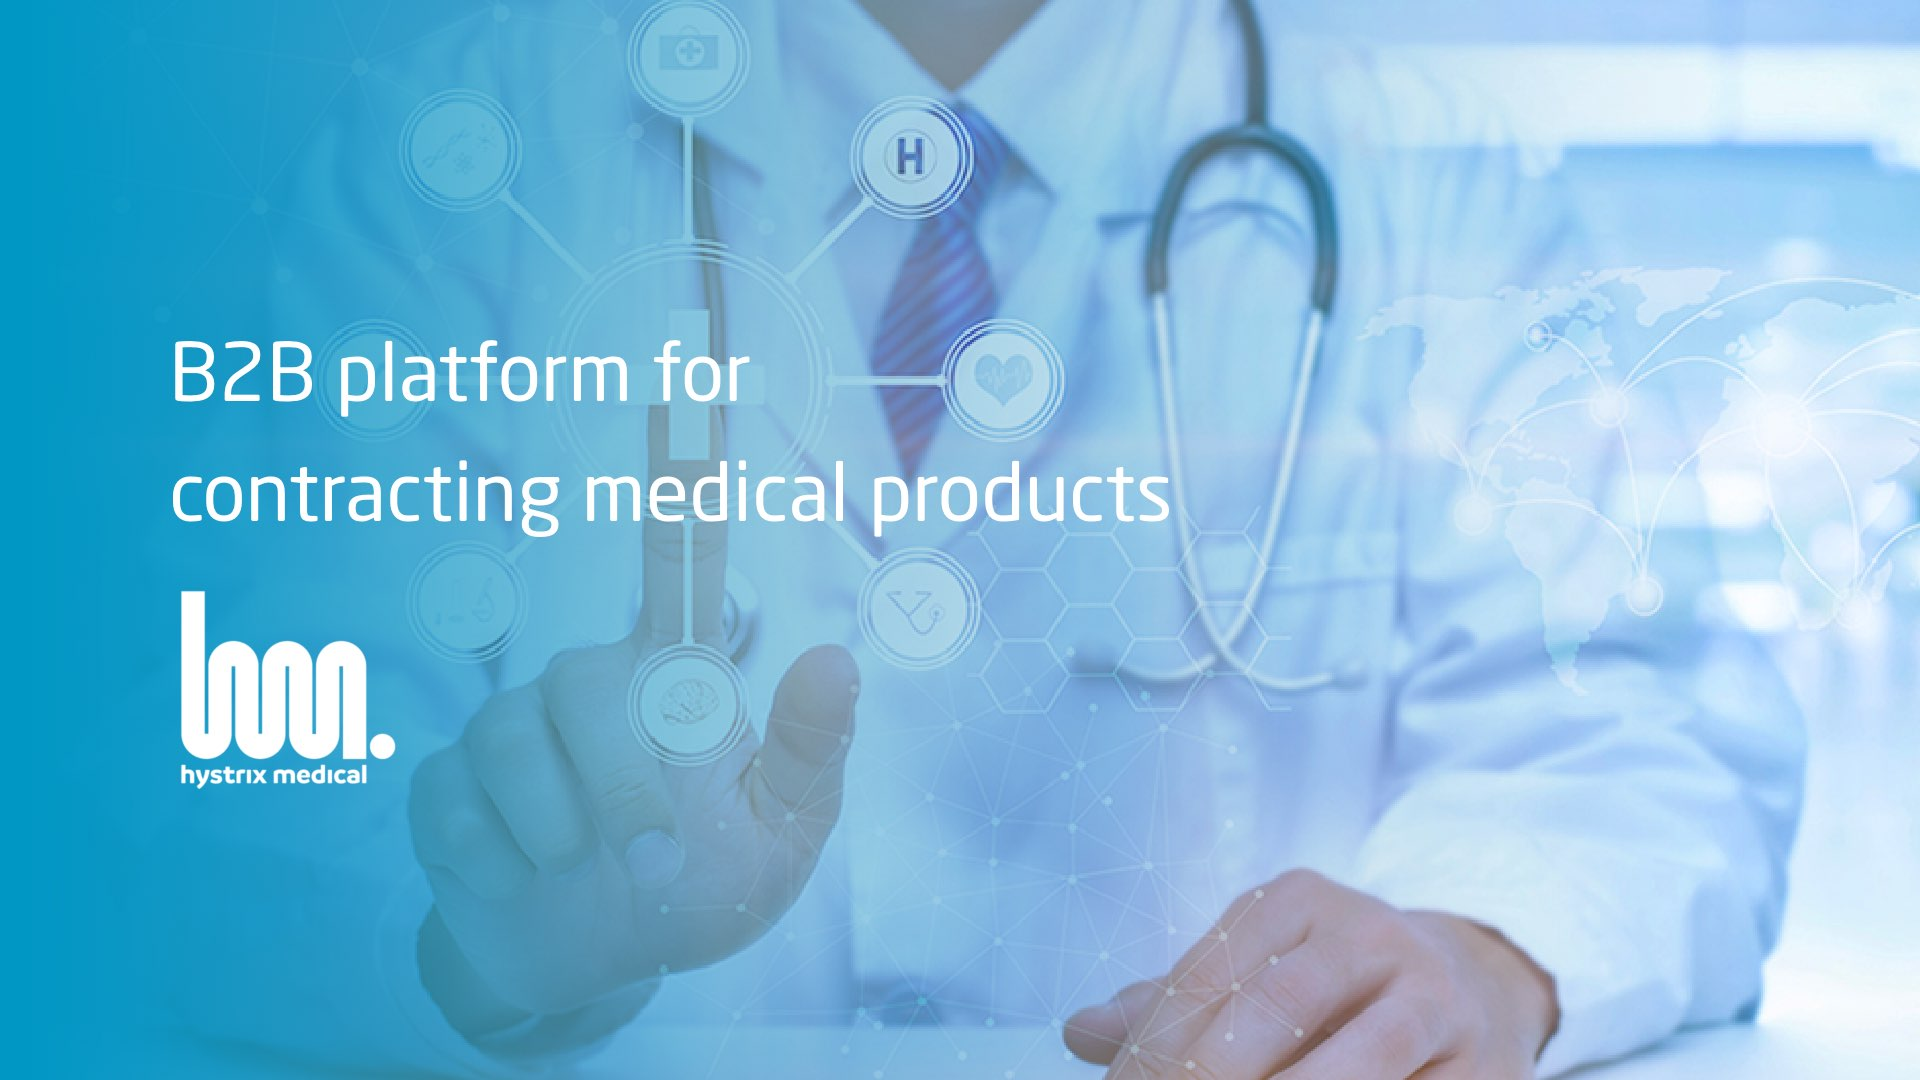 Hystrix Medical - a B2B platform for contracting medical products